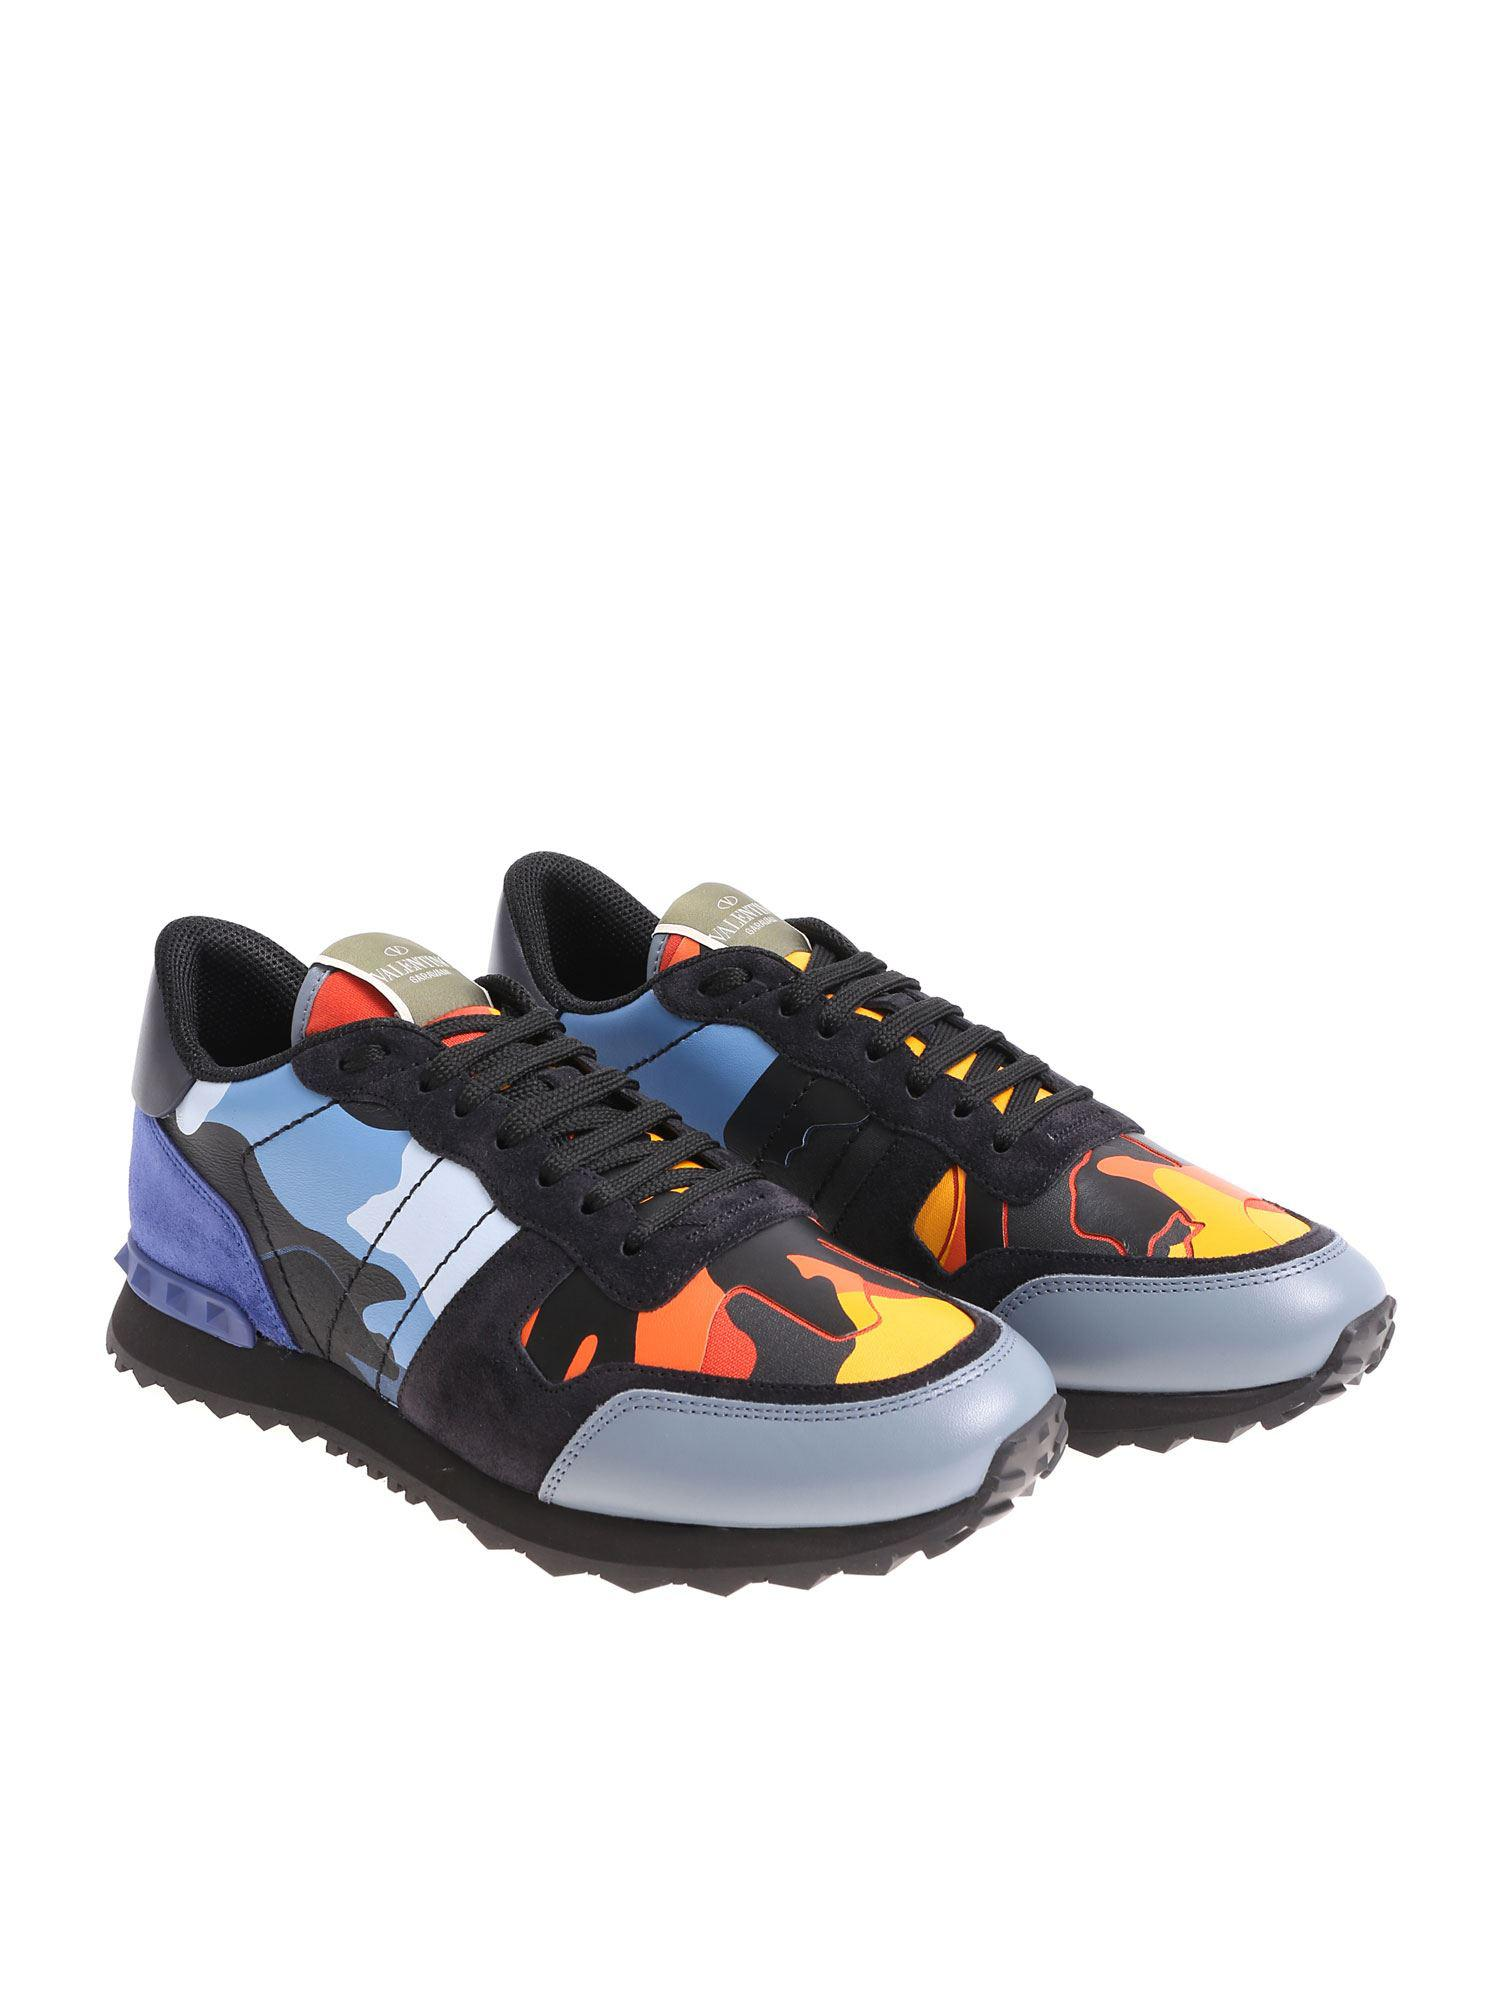 8025e4c39f1c Lyst - Valentino Rockrunner Camouflage Sneakers in Blue for Men